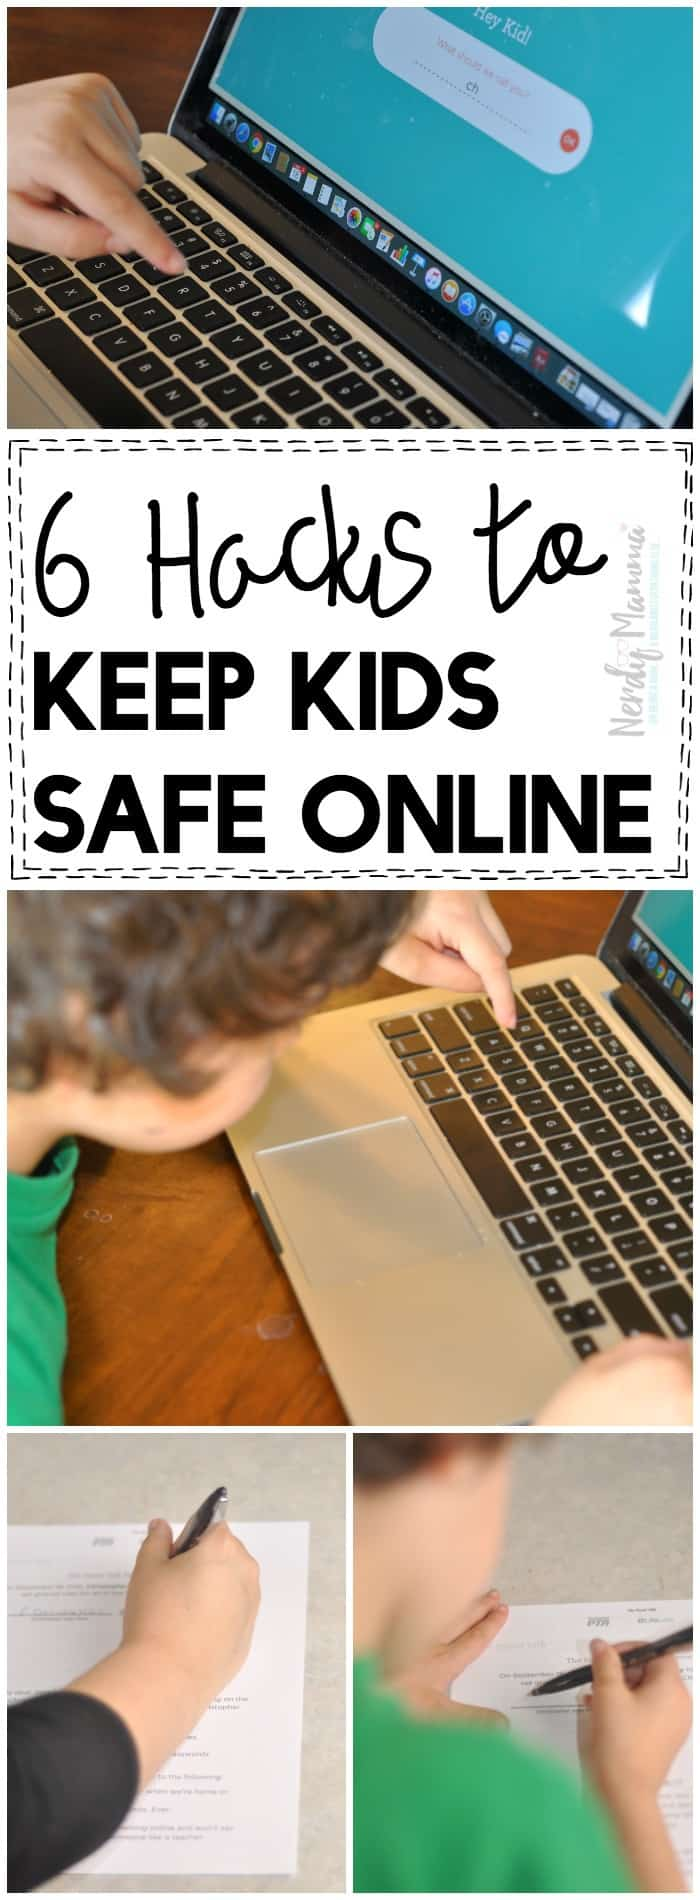 The internet becomes super scary when your kids start using it! You NEED these hacks to keep kids safe online!